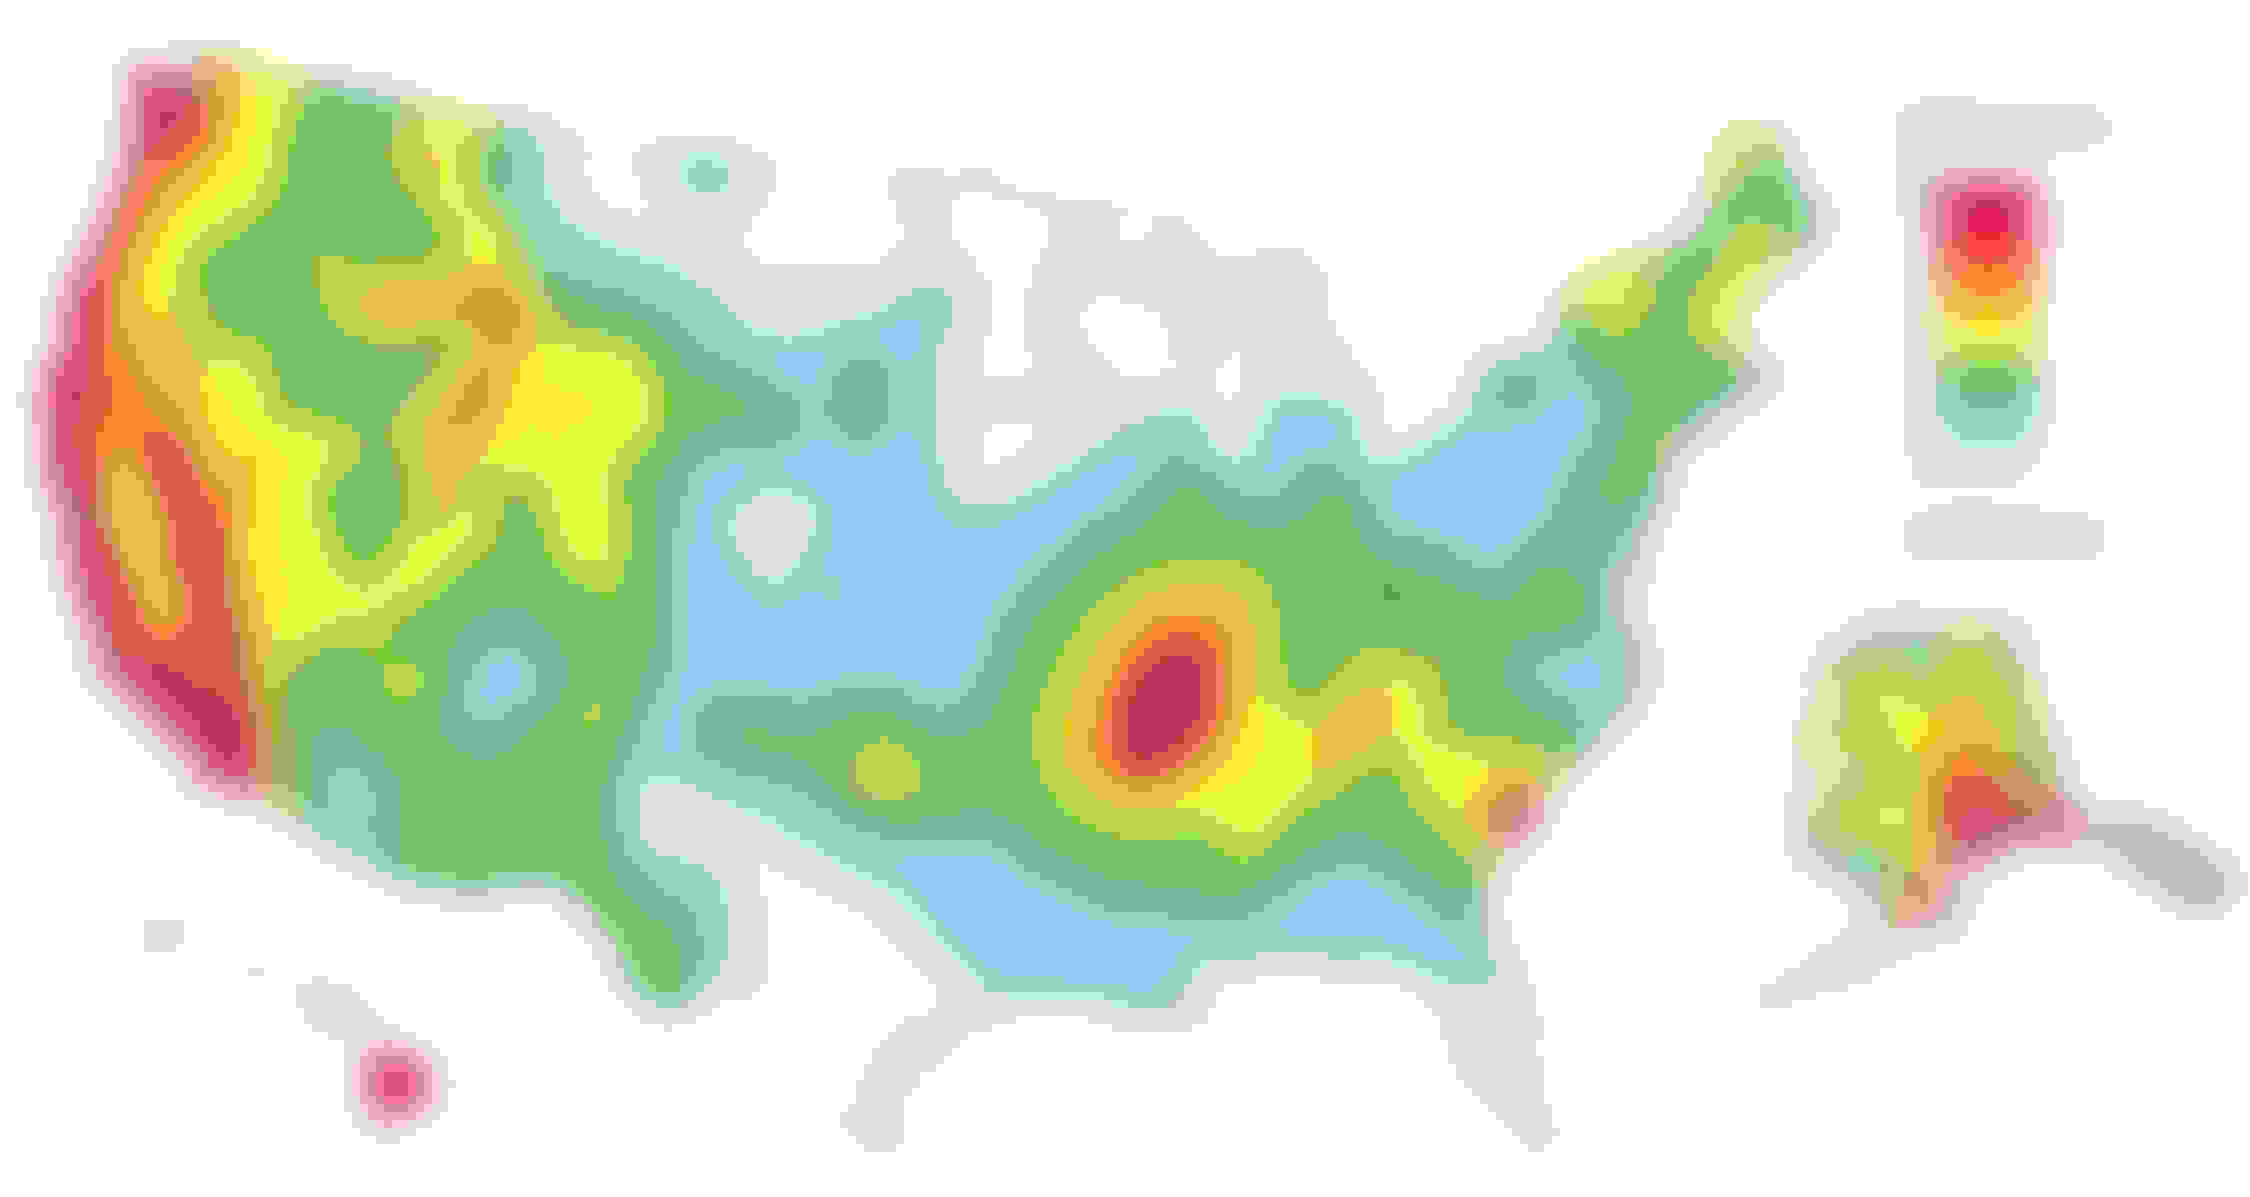 This map from the USGS shows which regions in the U.S. have the highest hazards for earthquakes